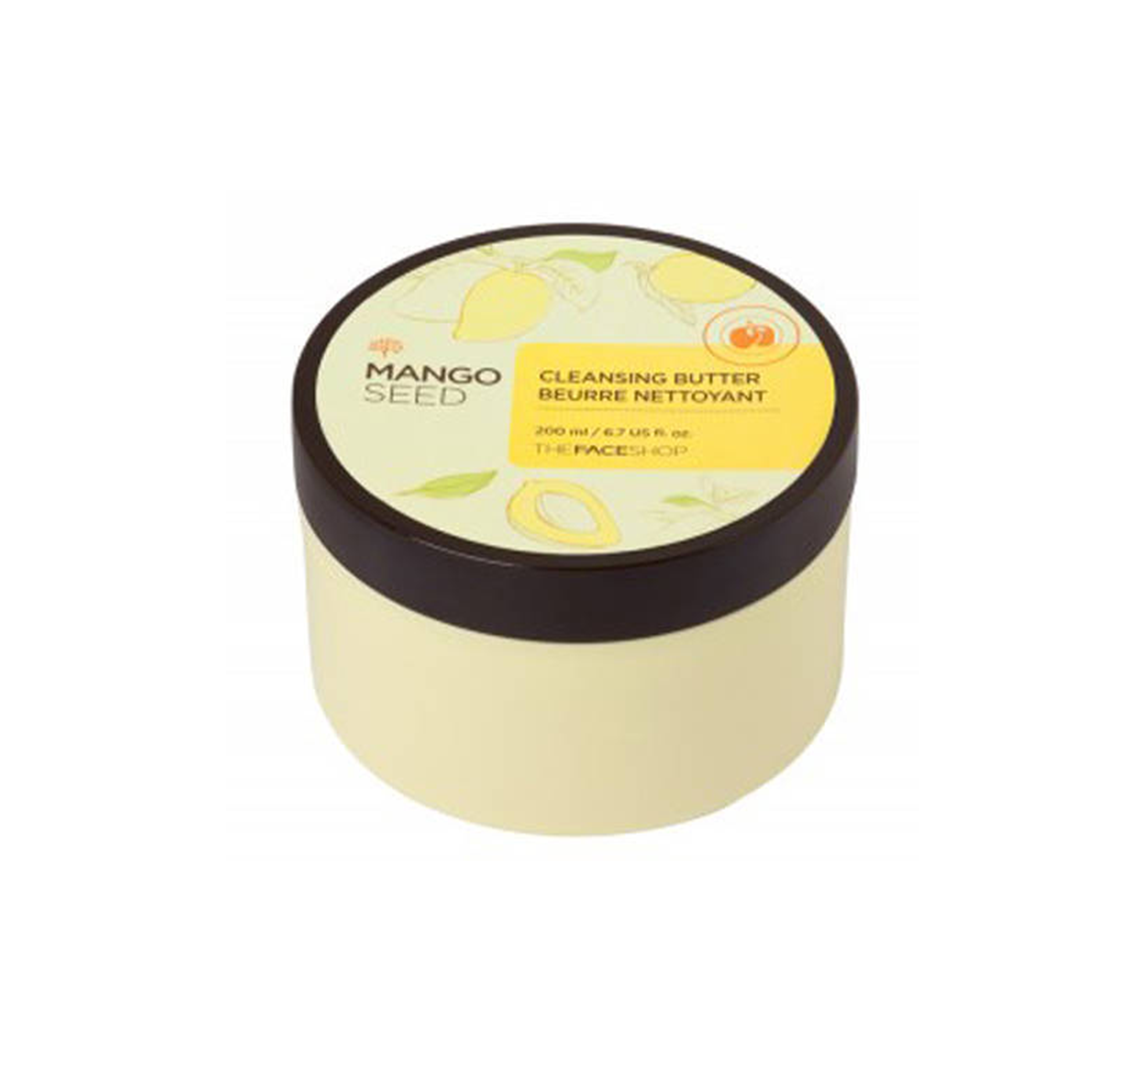 Kem tẩy trang Mango Seed Cleansing Butter